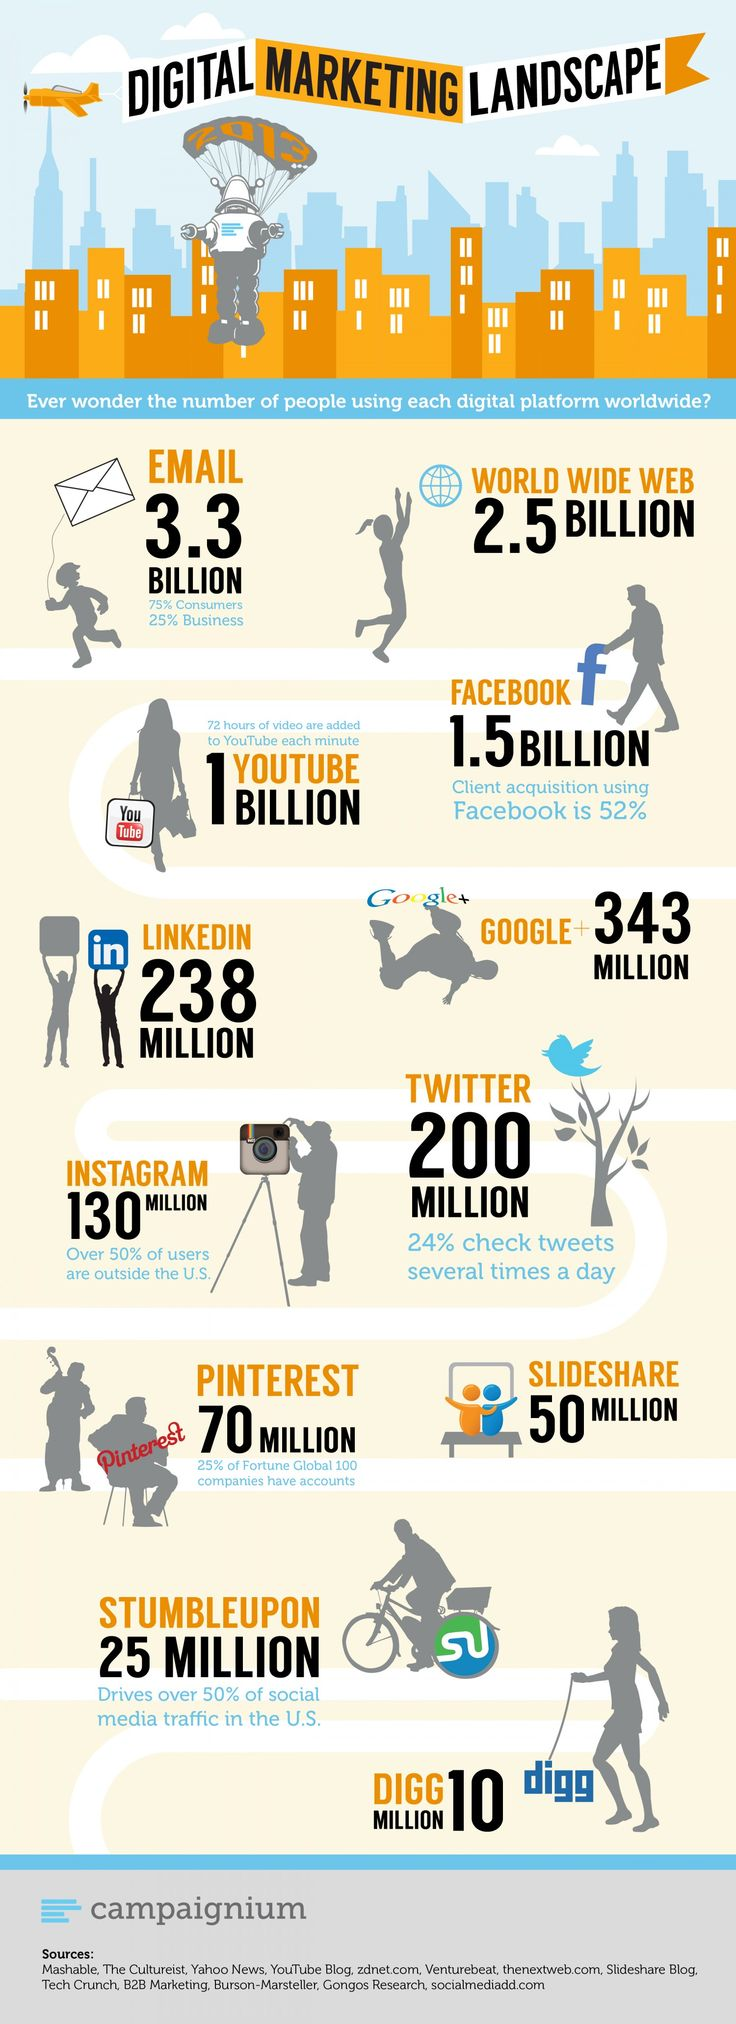 #DigitalMarketing Landscape